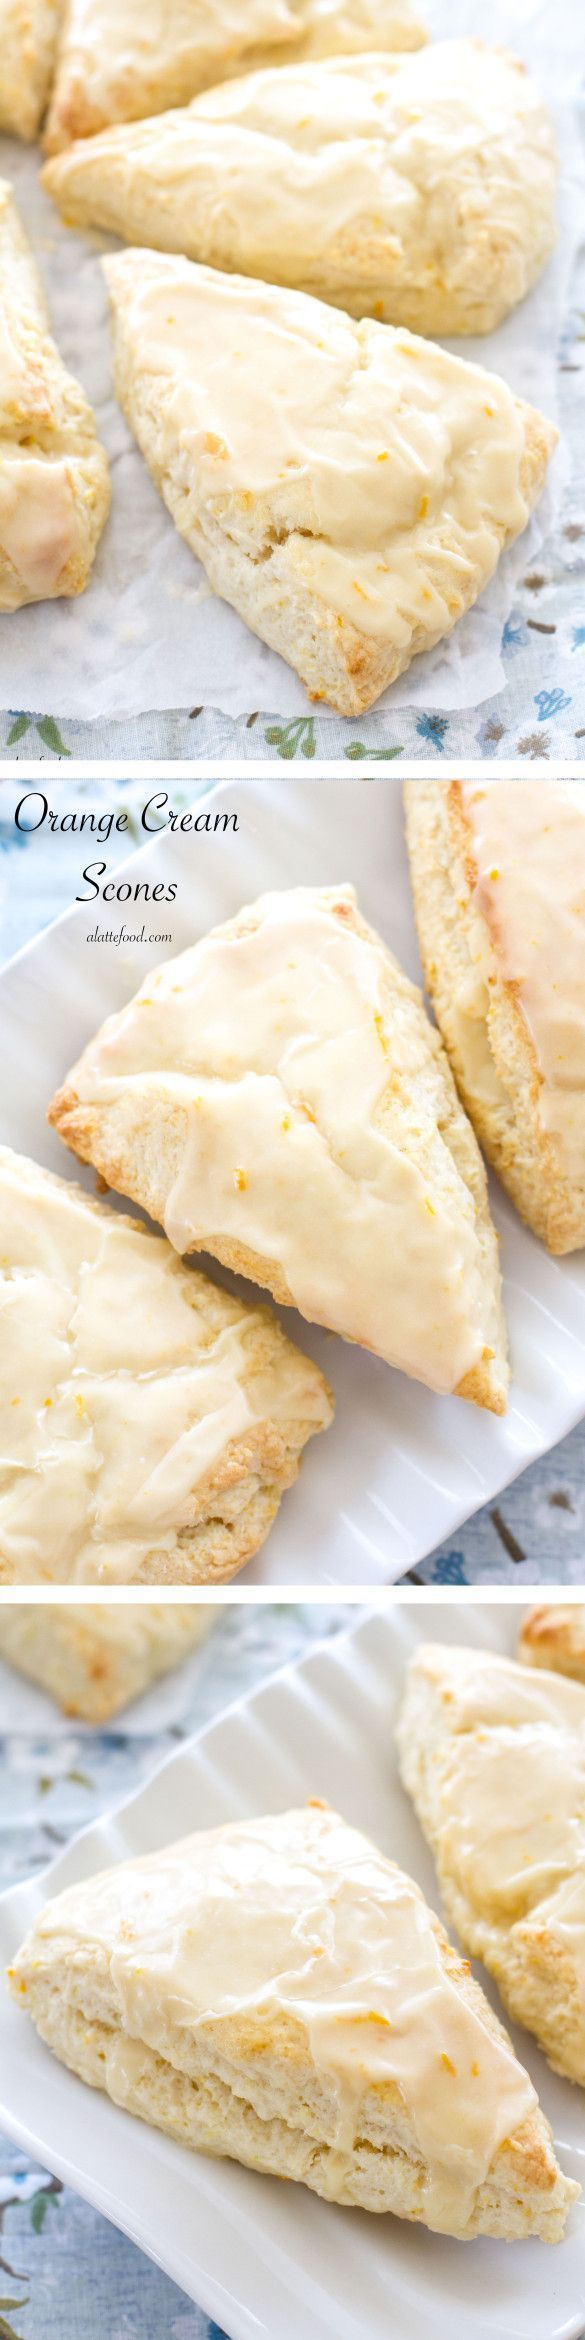 This orange cream scone recipe is sweet, flaky, and the perfect breakfast or brunch recipe!